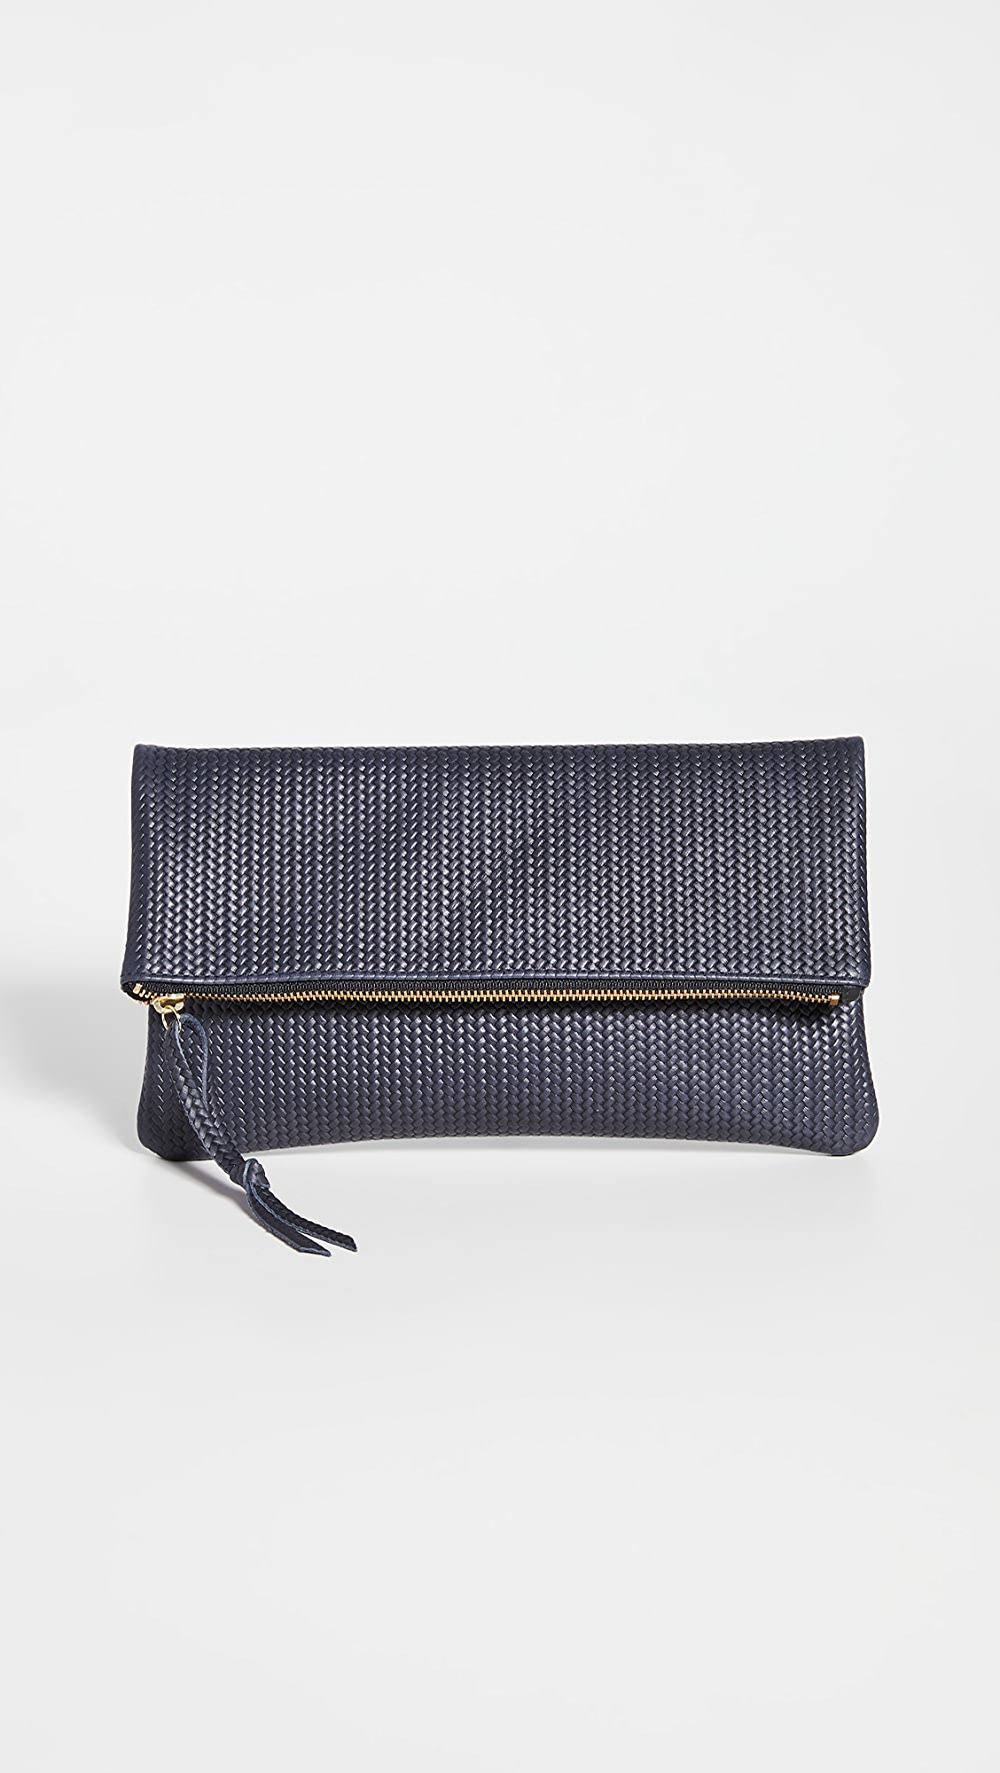 Objective Oliveve - Anastasia Clutch Consumers First